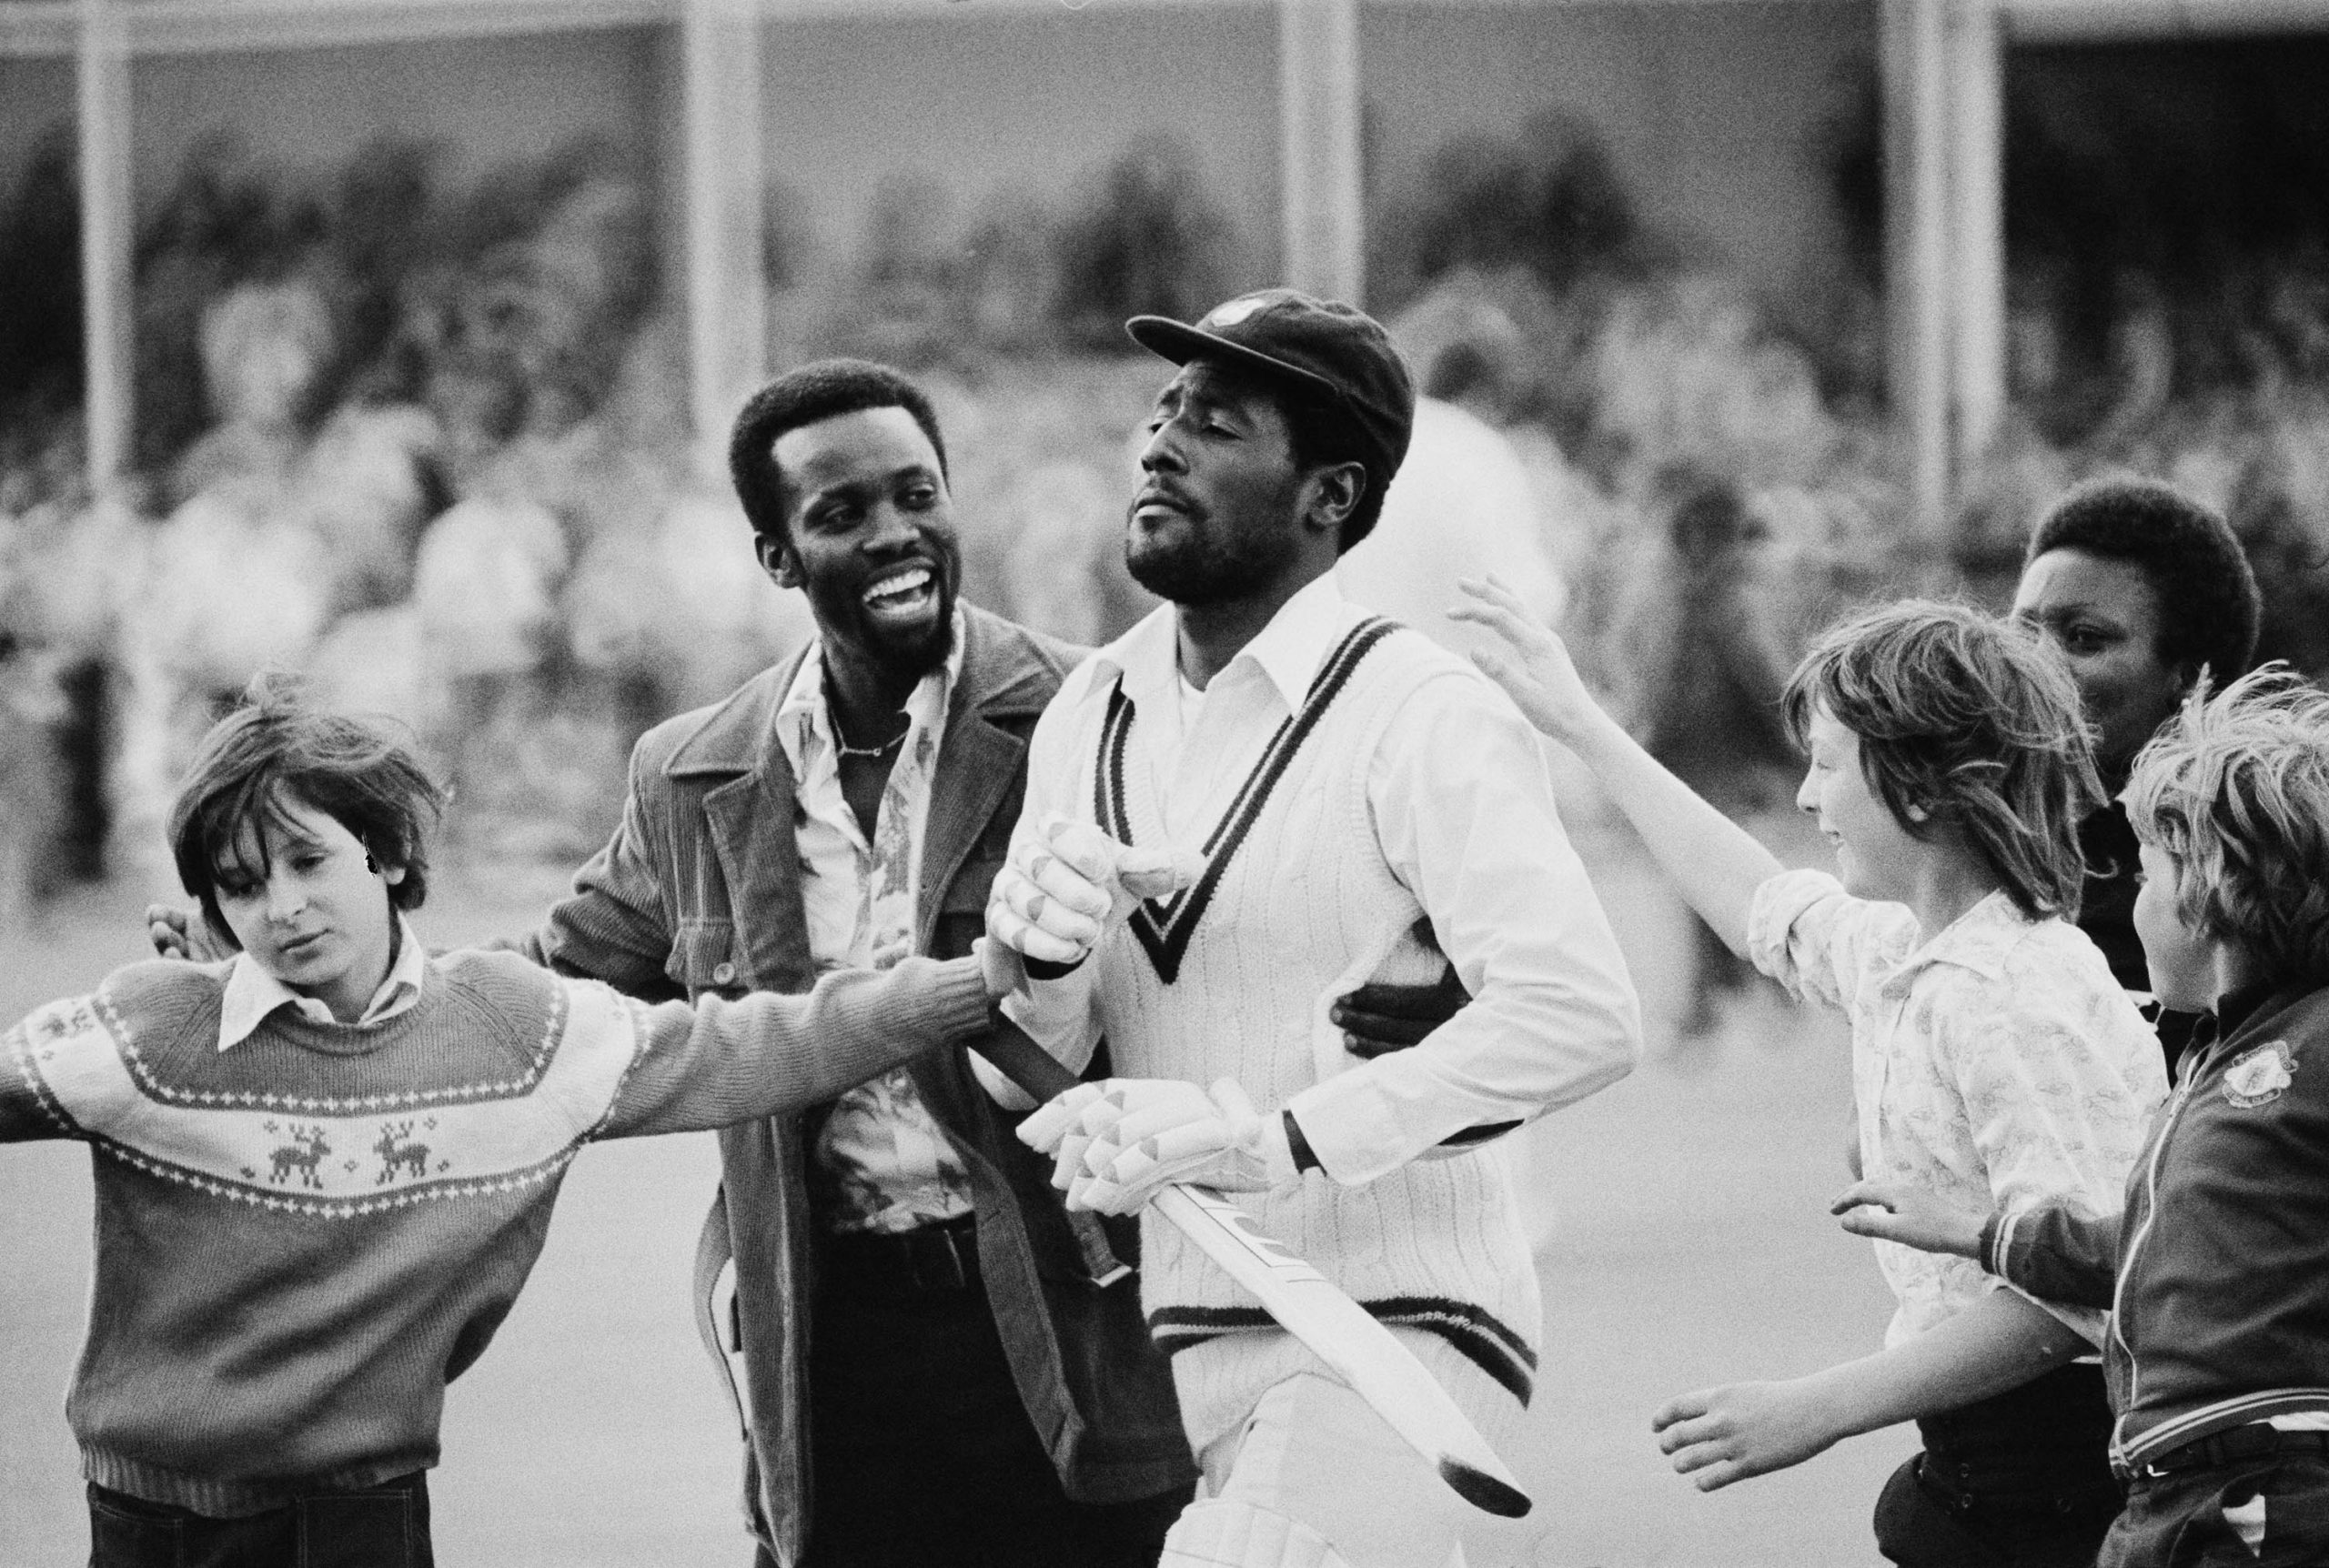 3 June 1976: Fans greet West Indies cricketer Vivian Richards at Trent Bridge, Nottingham, after the first Test of the West Indies' tour of England. (Photograph by Wood/ Evening Standard/ Hulton Archive/ Getty Images)